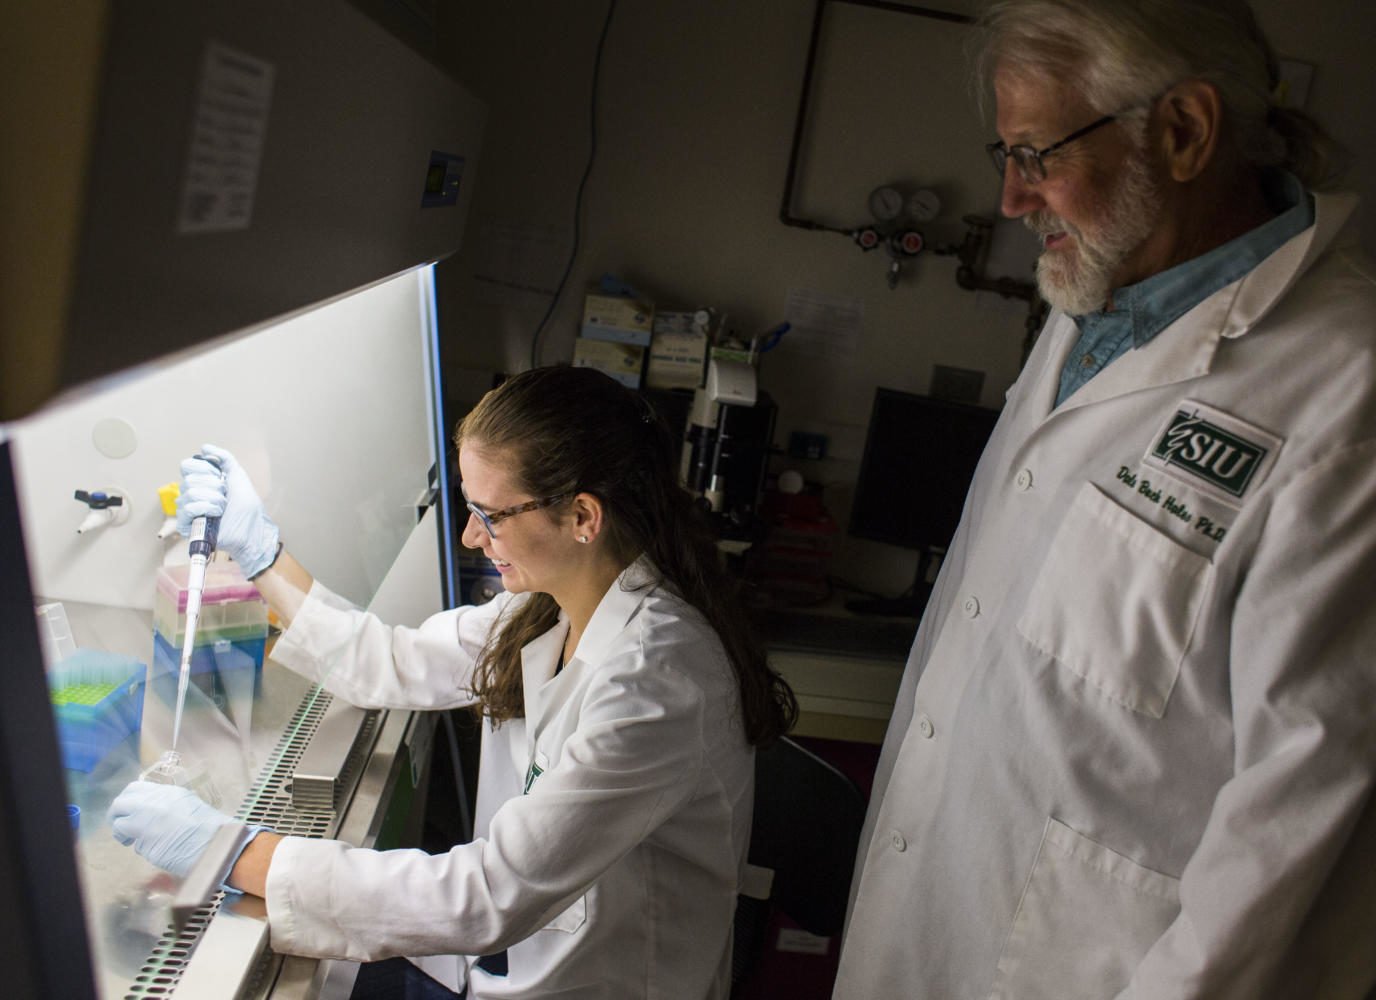 "Senior physiology major Kara Starkweather, left, prepares to split some cells under the supervision of Professor of Physiology Dr. Buck Hales in a Life Sciences II lab Friday, Aug. 25, 2017, in Carbondale. The duo is using hens, which ovulate similarly to women, to research flaxseed as a dietary intervention in preventing ovarian cancer. ""We understand that the major cause of ovarian cancer is the inflammation associated with ovulation,"" said Hales. ""Our goal is to turn ovarian cancer into a disease that women can live with instead of die from."" (Ryan Michalesko 